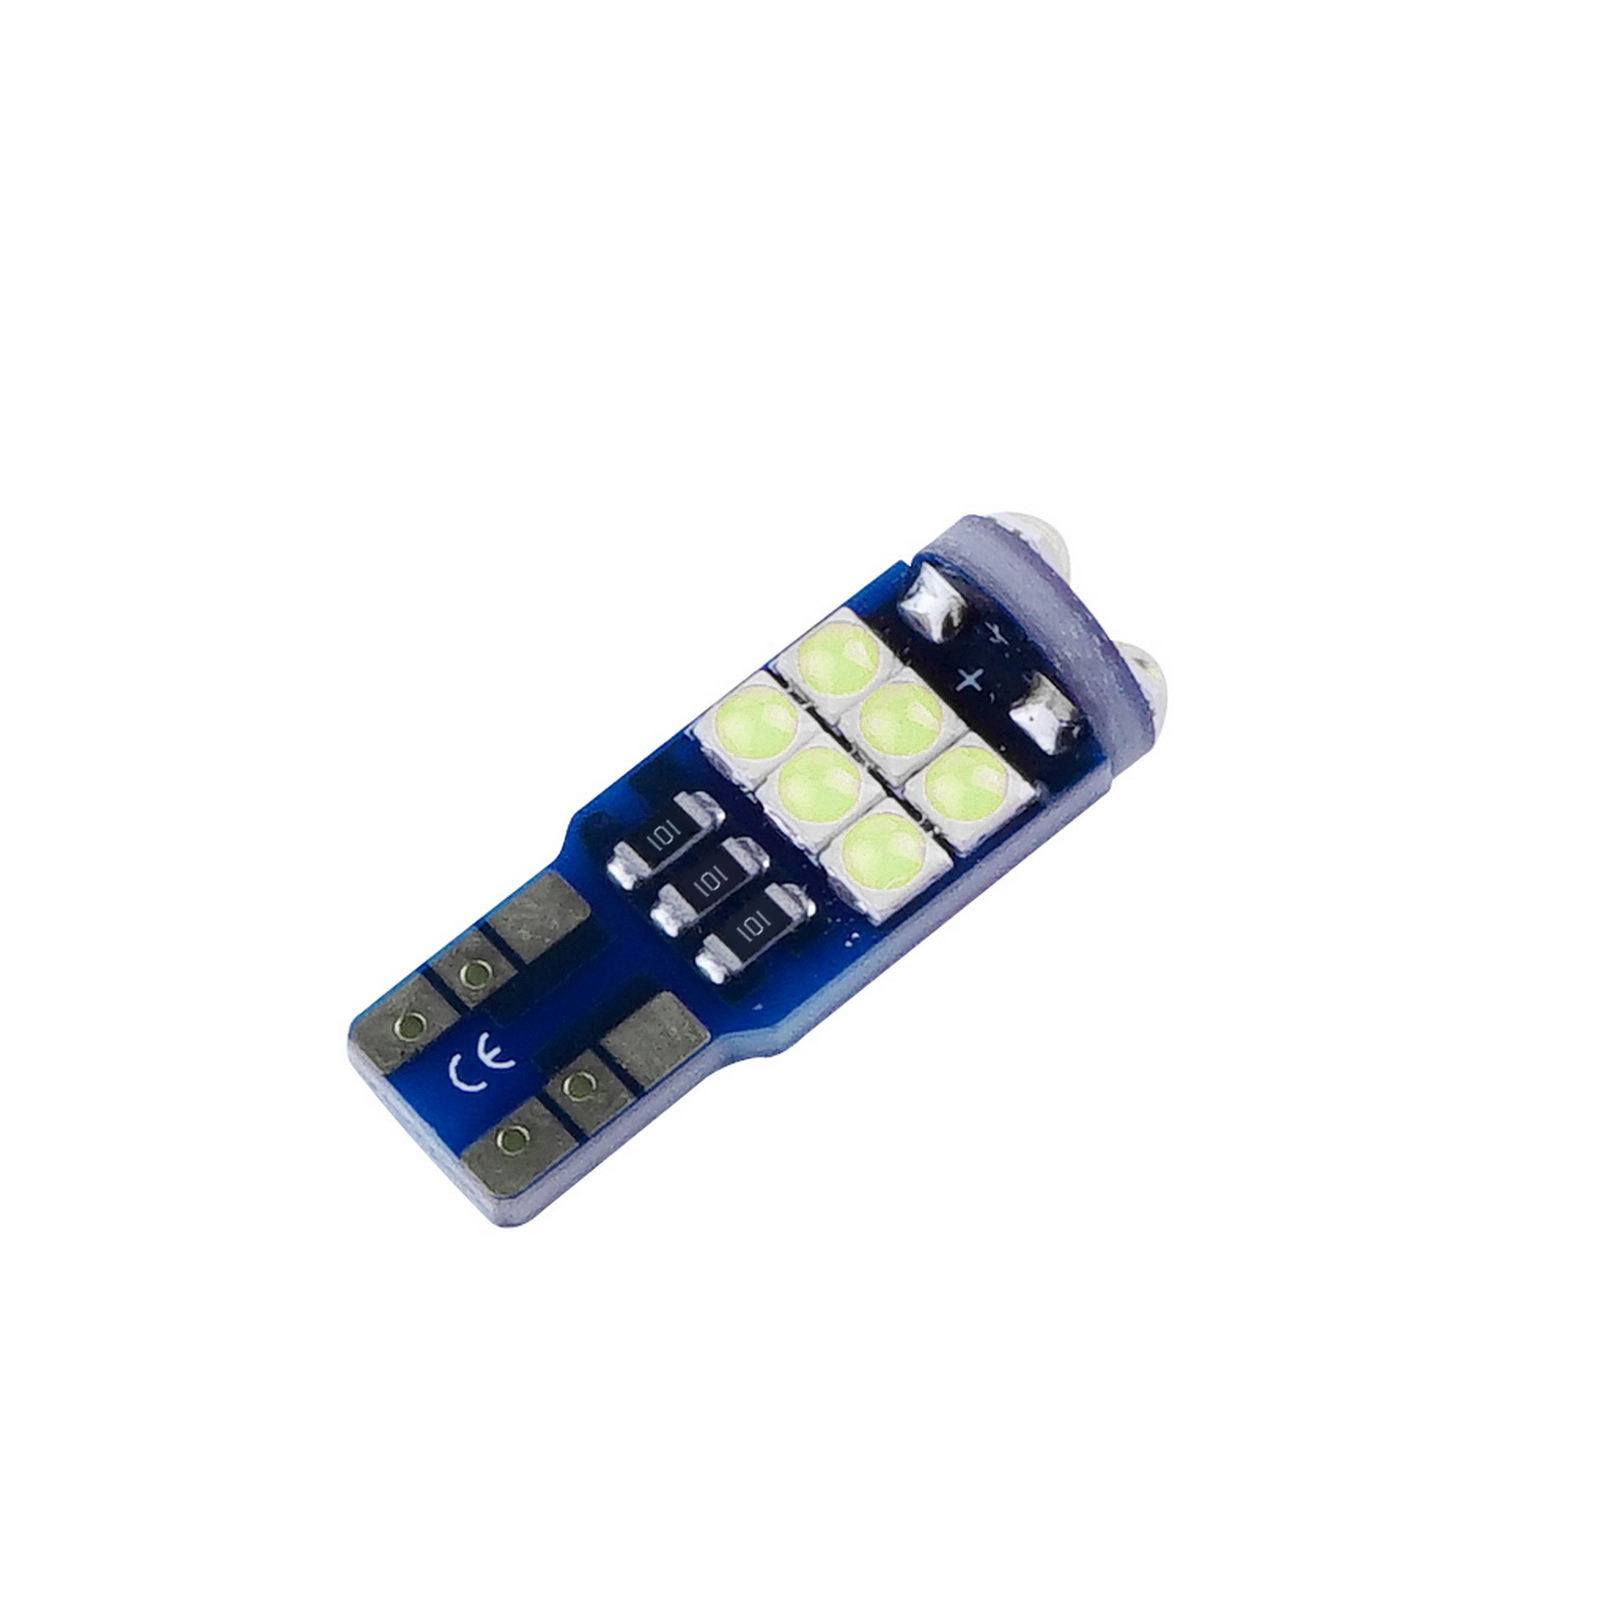 Mini LED <span class=keywords><strong>T10</strong></span> 15SMD 194 <span class=keywords><strong>W5W</strong></span> eis blau <span class=keywords><strong>t10</strong></span> birne automotive mit 3030 buchse chips